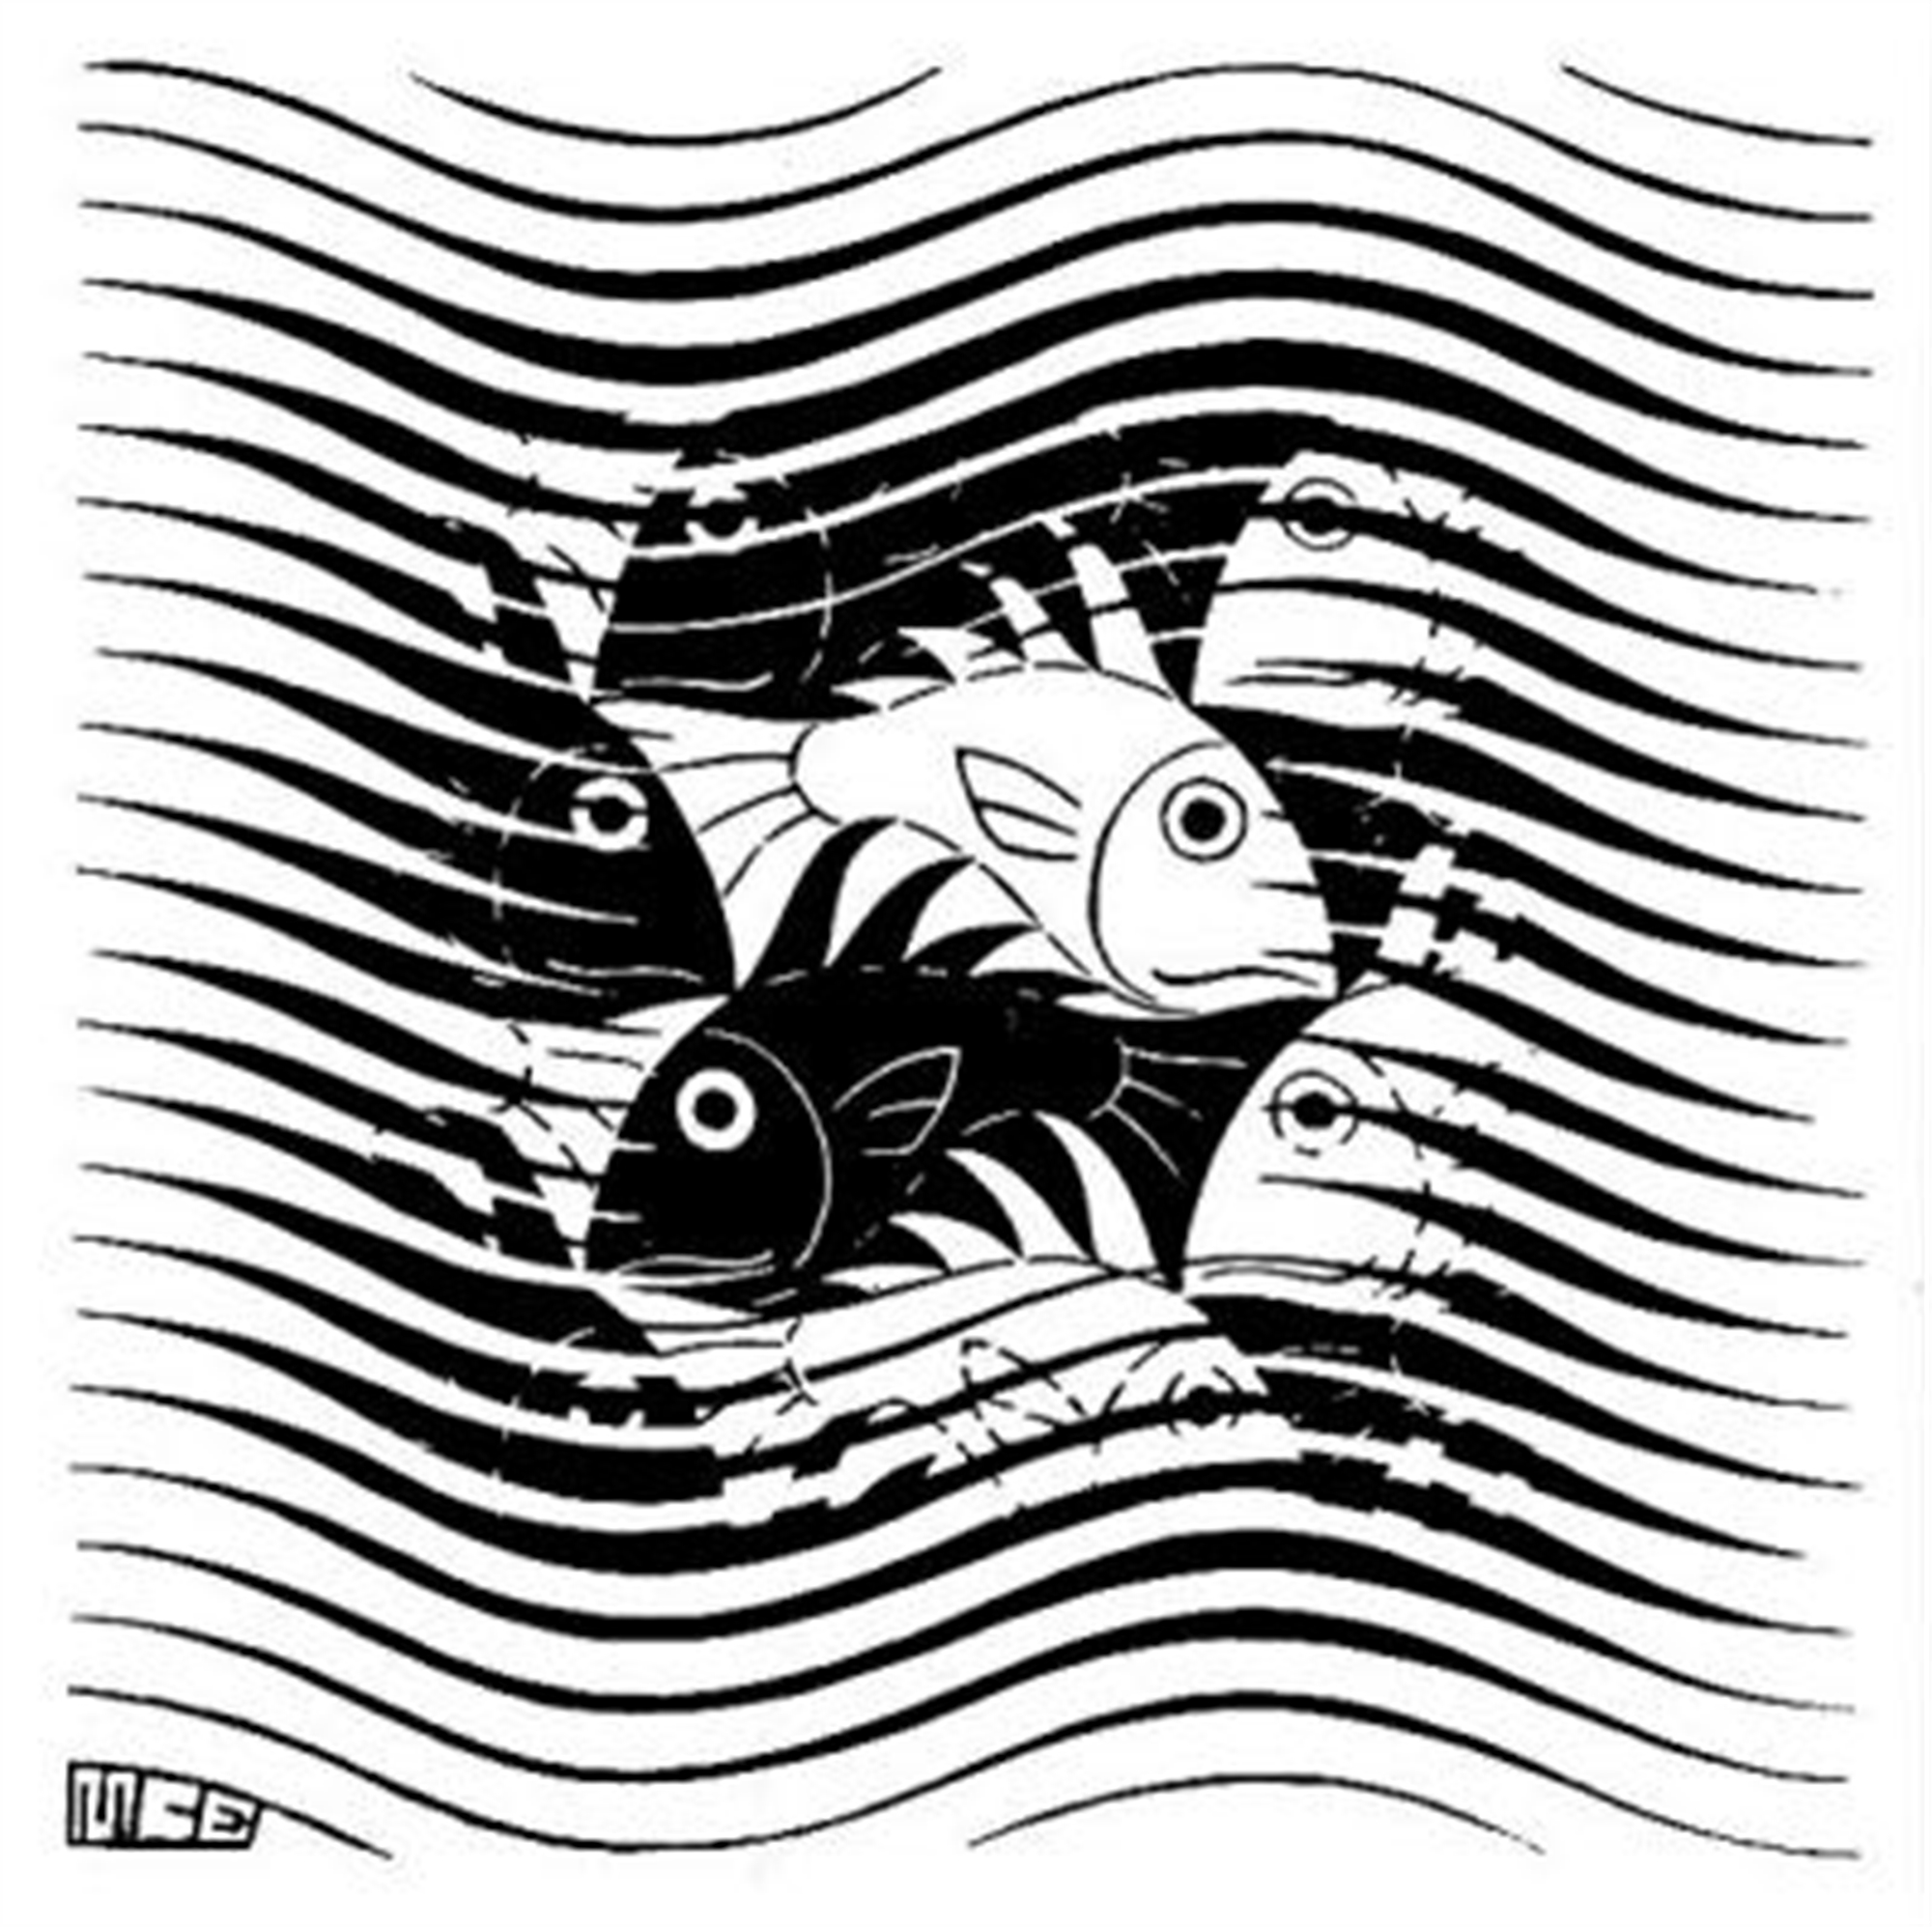 Fish and Waves by M.C. Escher